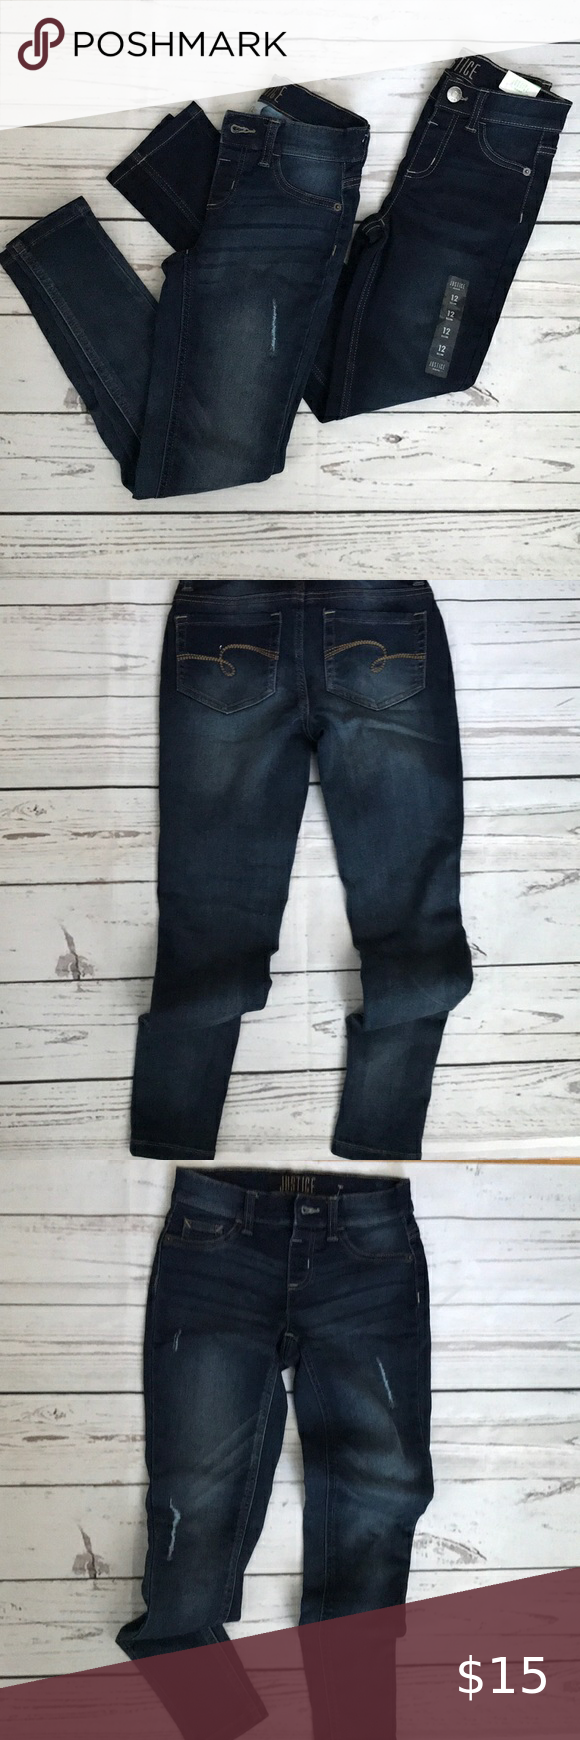 Bundle Two Pairs Of Justice Jeans Clothes Design Size 12 Girls Jeans